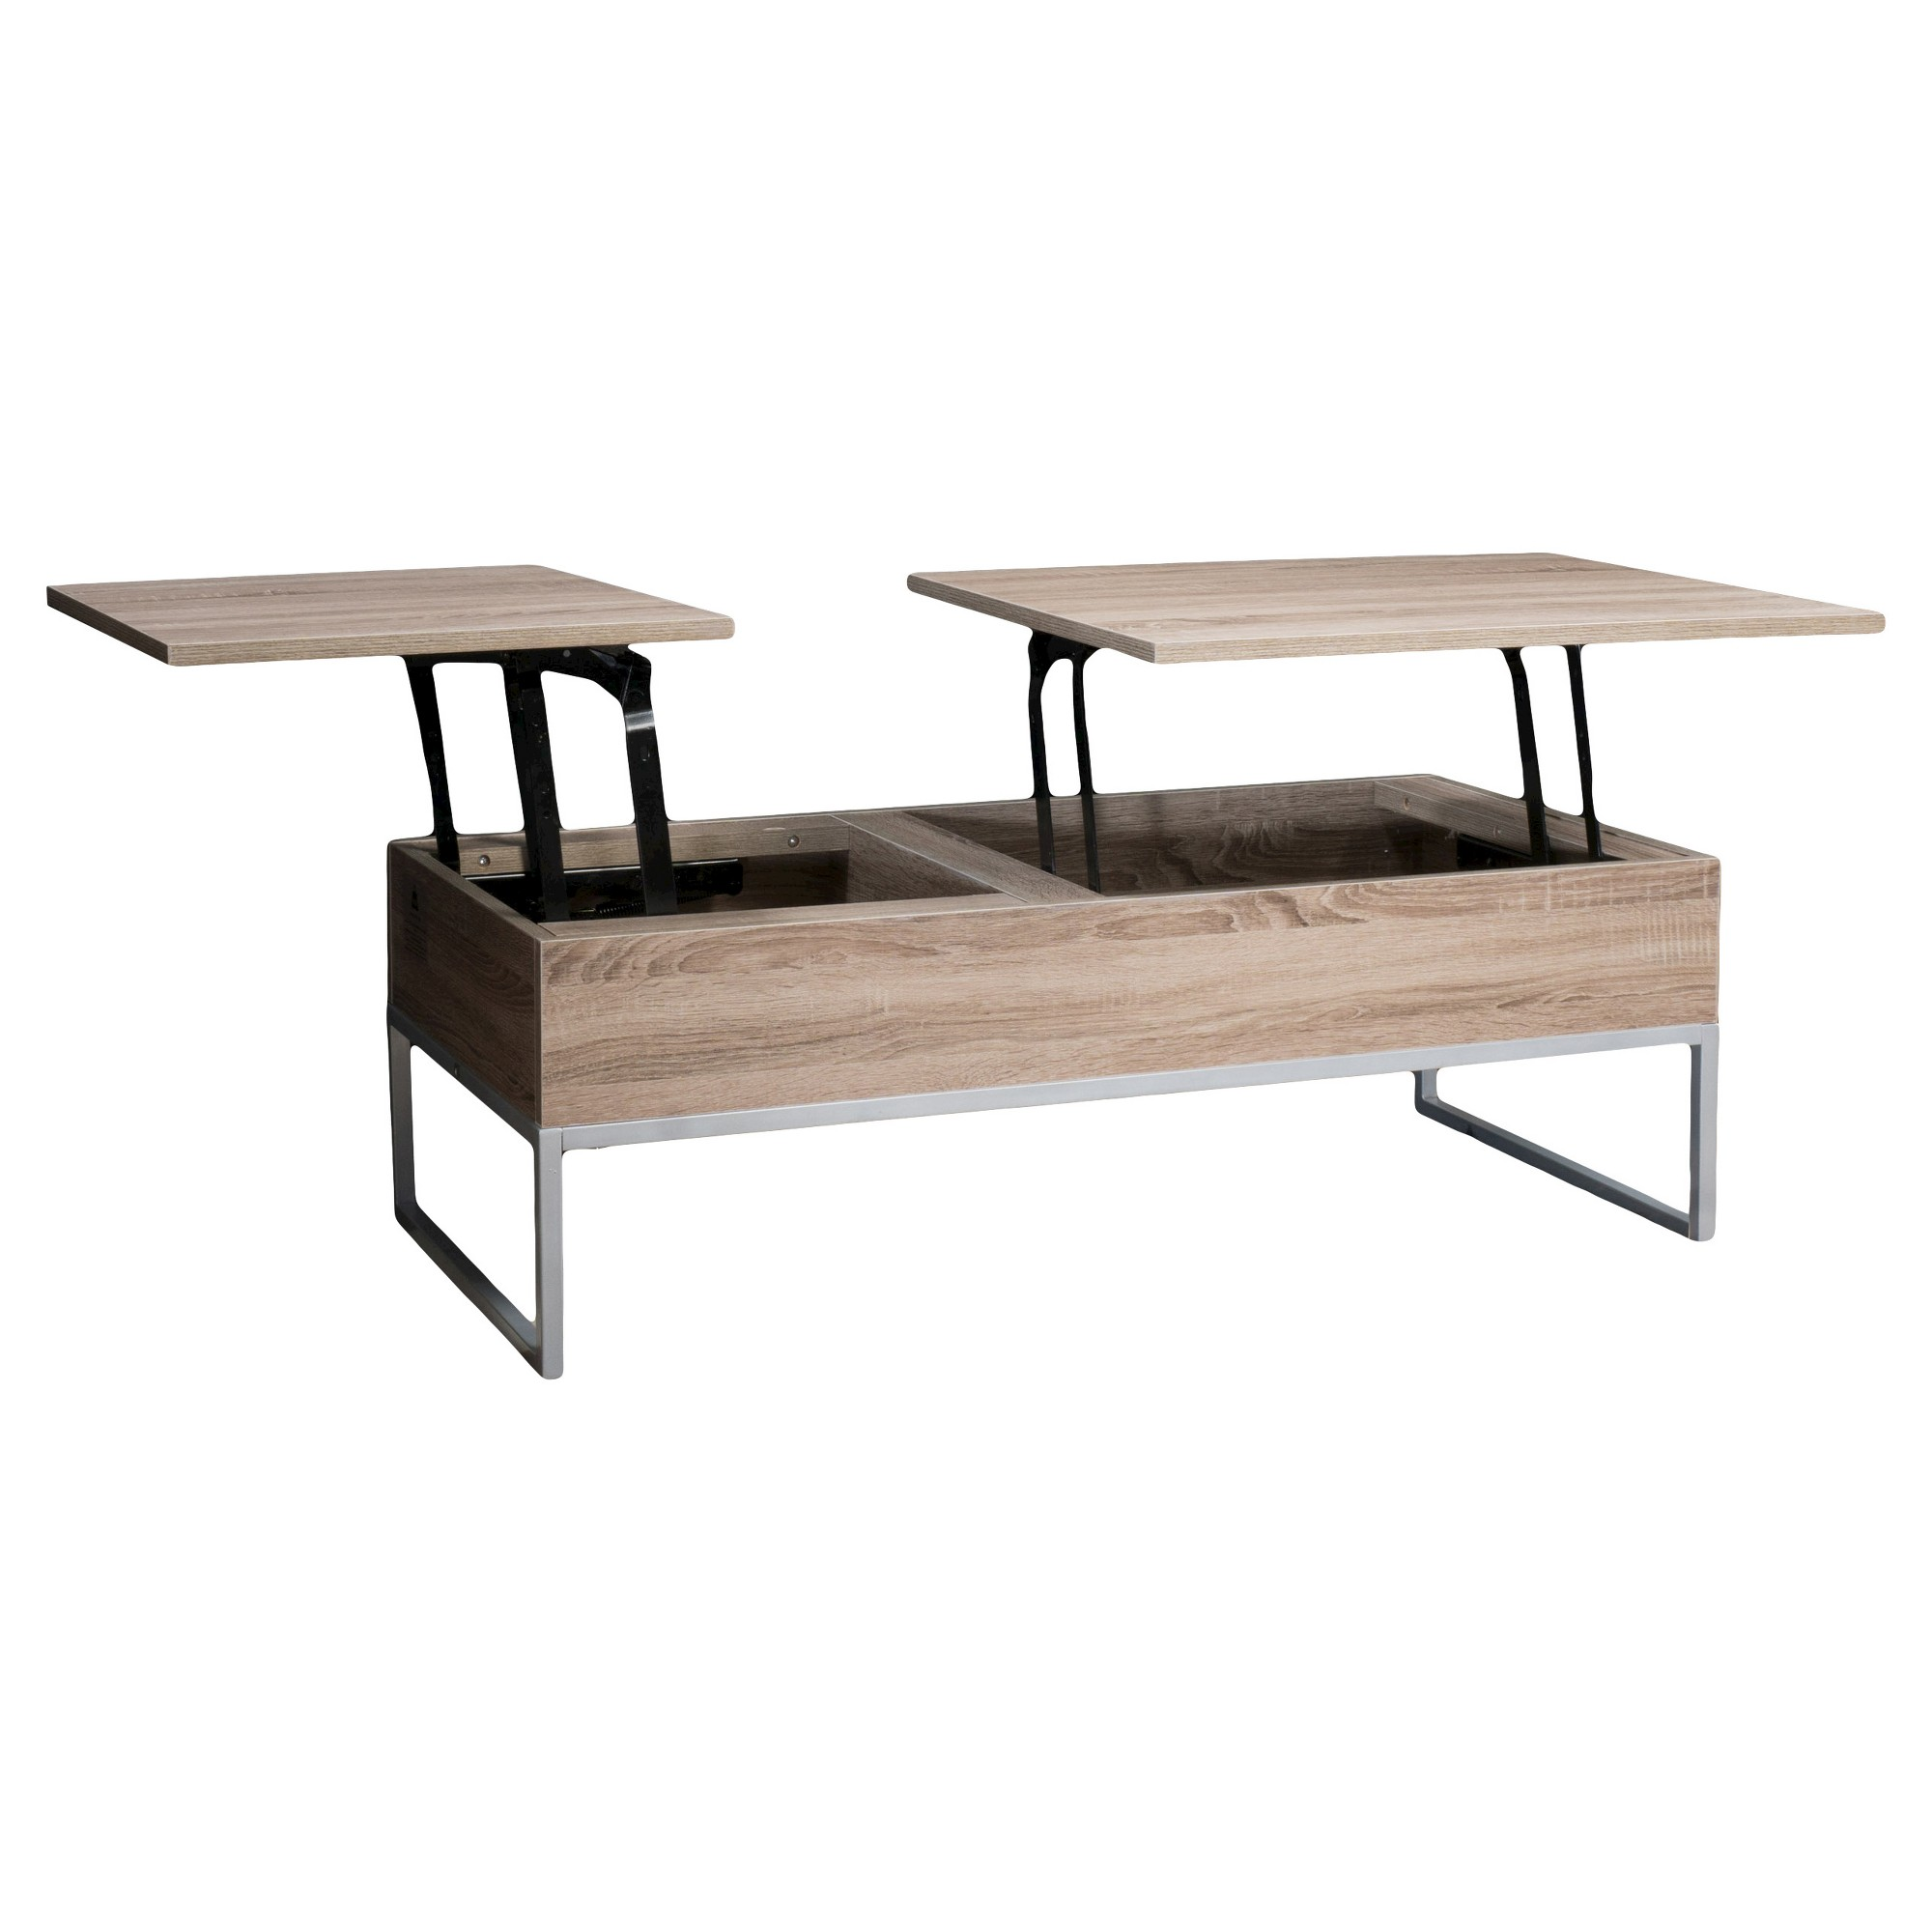 Lift Functional Coffee Table Sonoma Tan Christopher Knight Home Coffee Table Coffee Table Wood Lift Coffee Table [ 2000 x 2000 Pixel ]